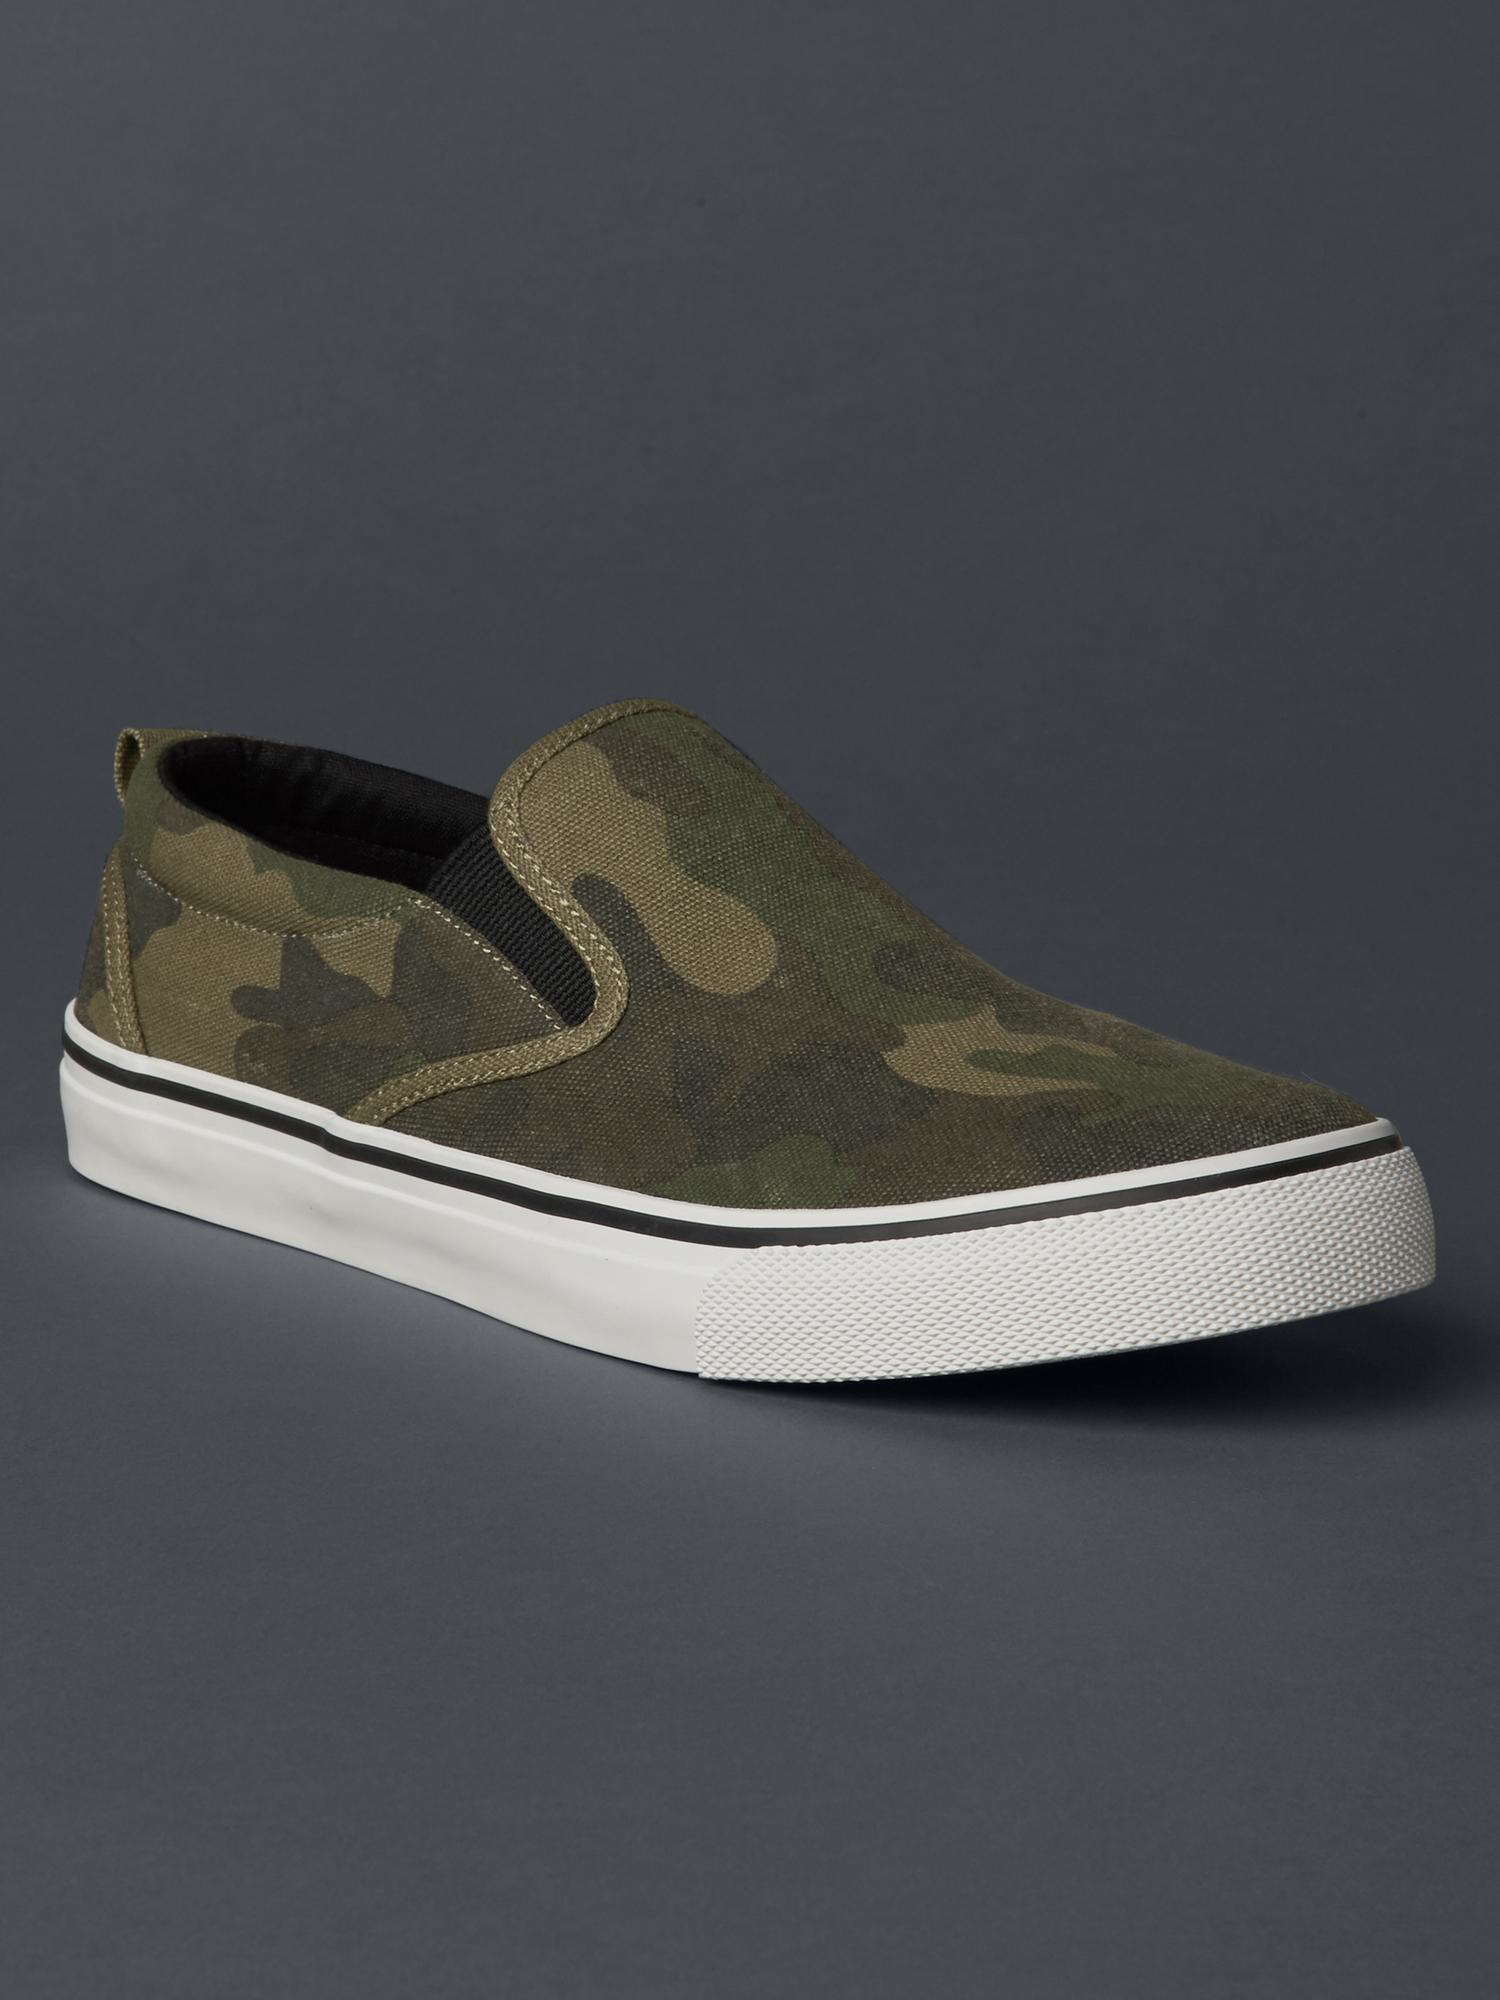 gap slip on sneakers in green for green camo lyst